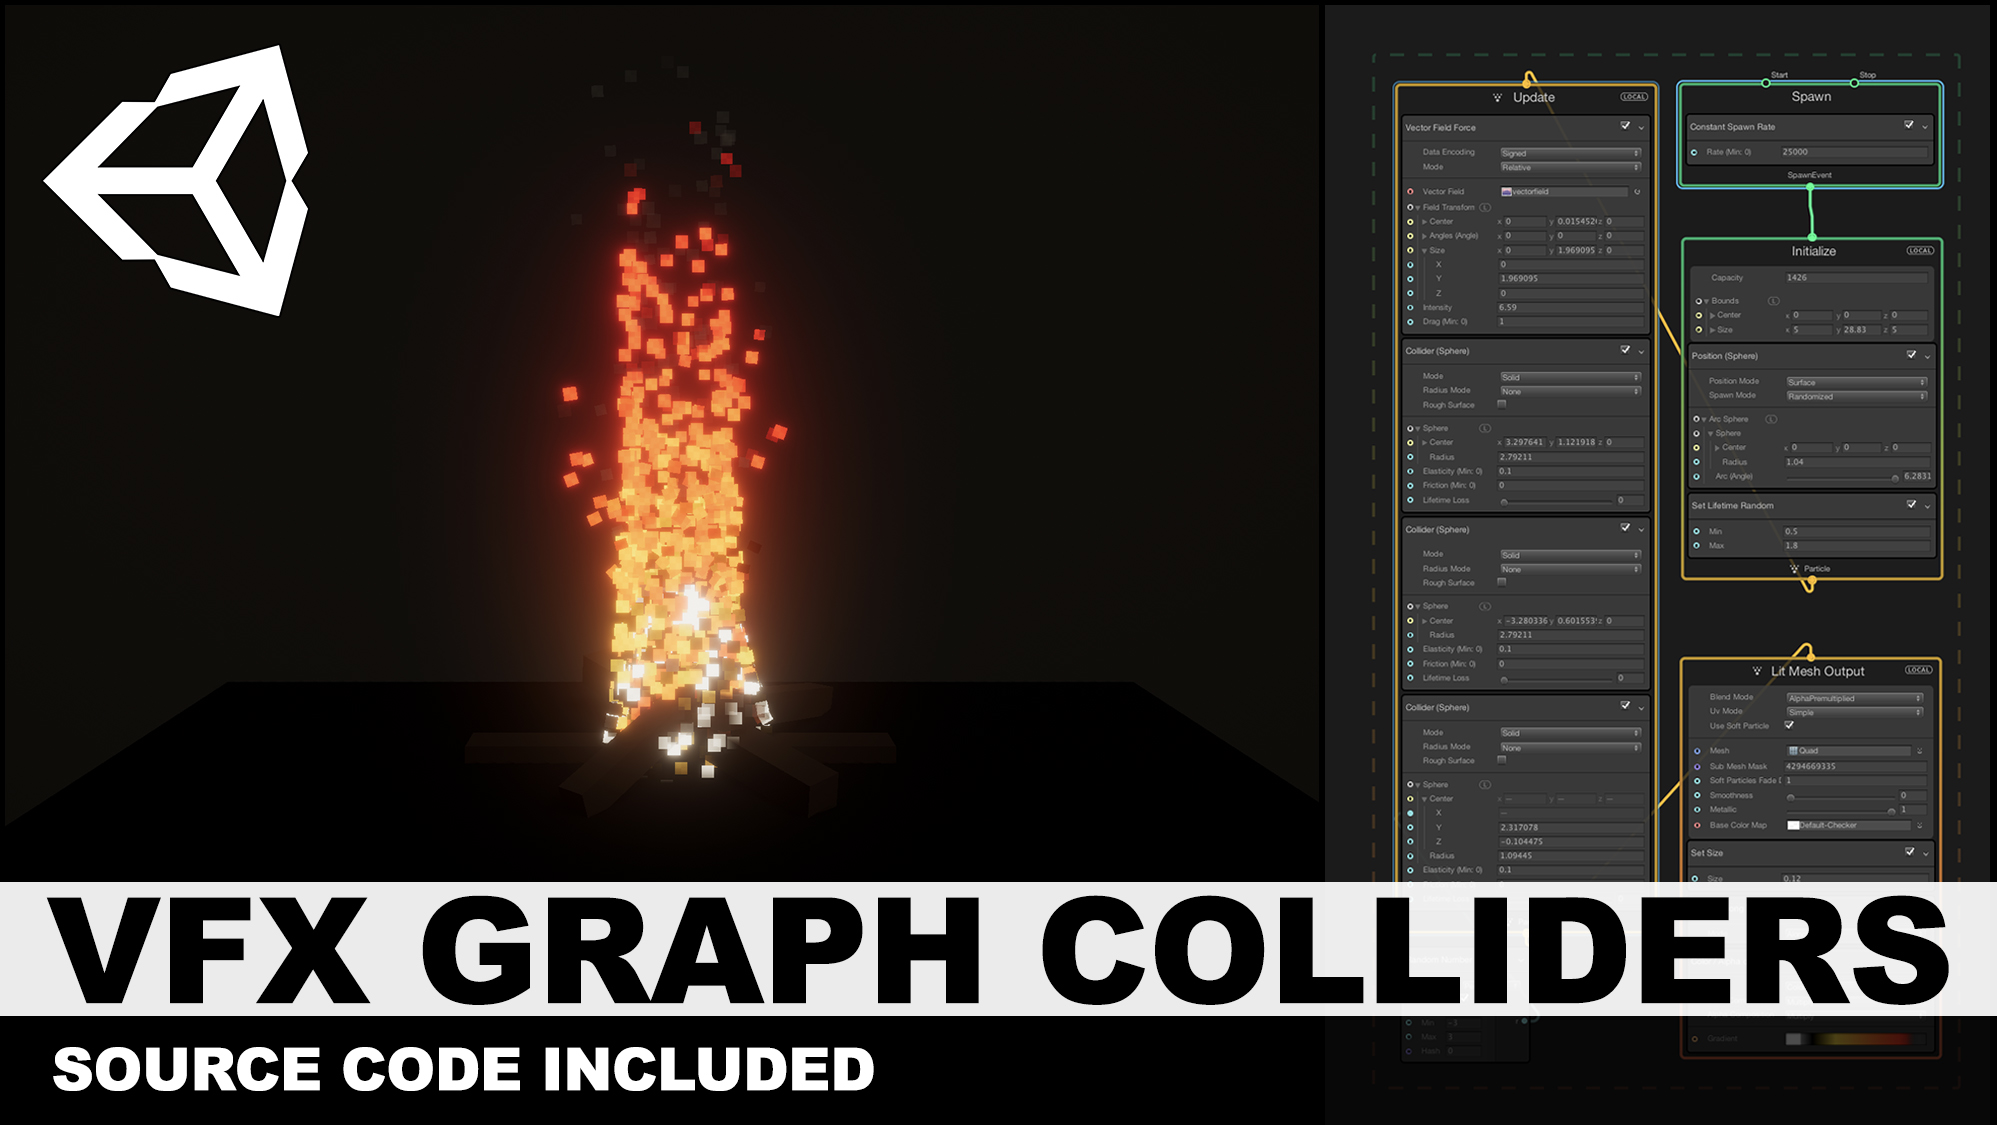 Unity3d VFX Graph Colliders with new VFX Scenes included such as Space, Fire, and Basic Scene